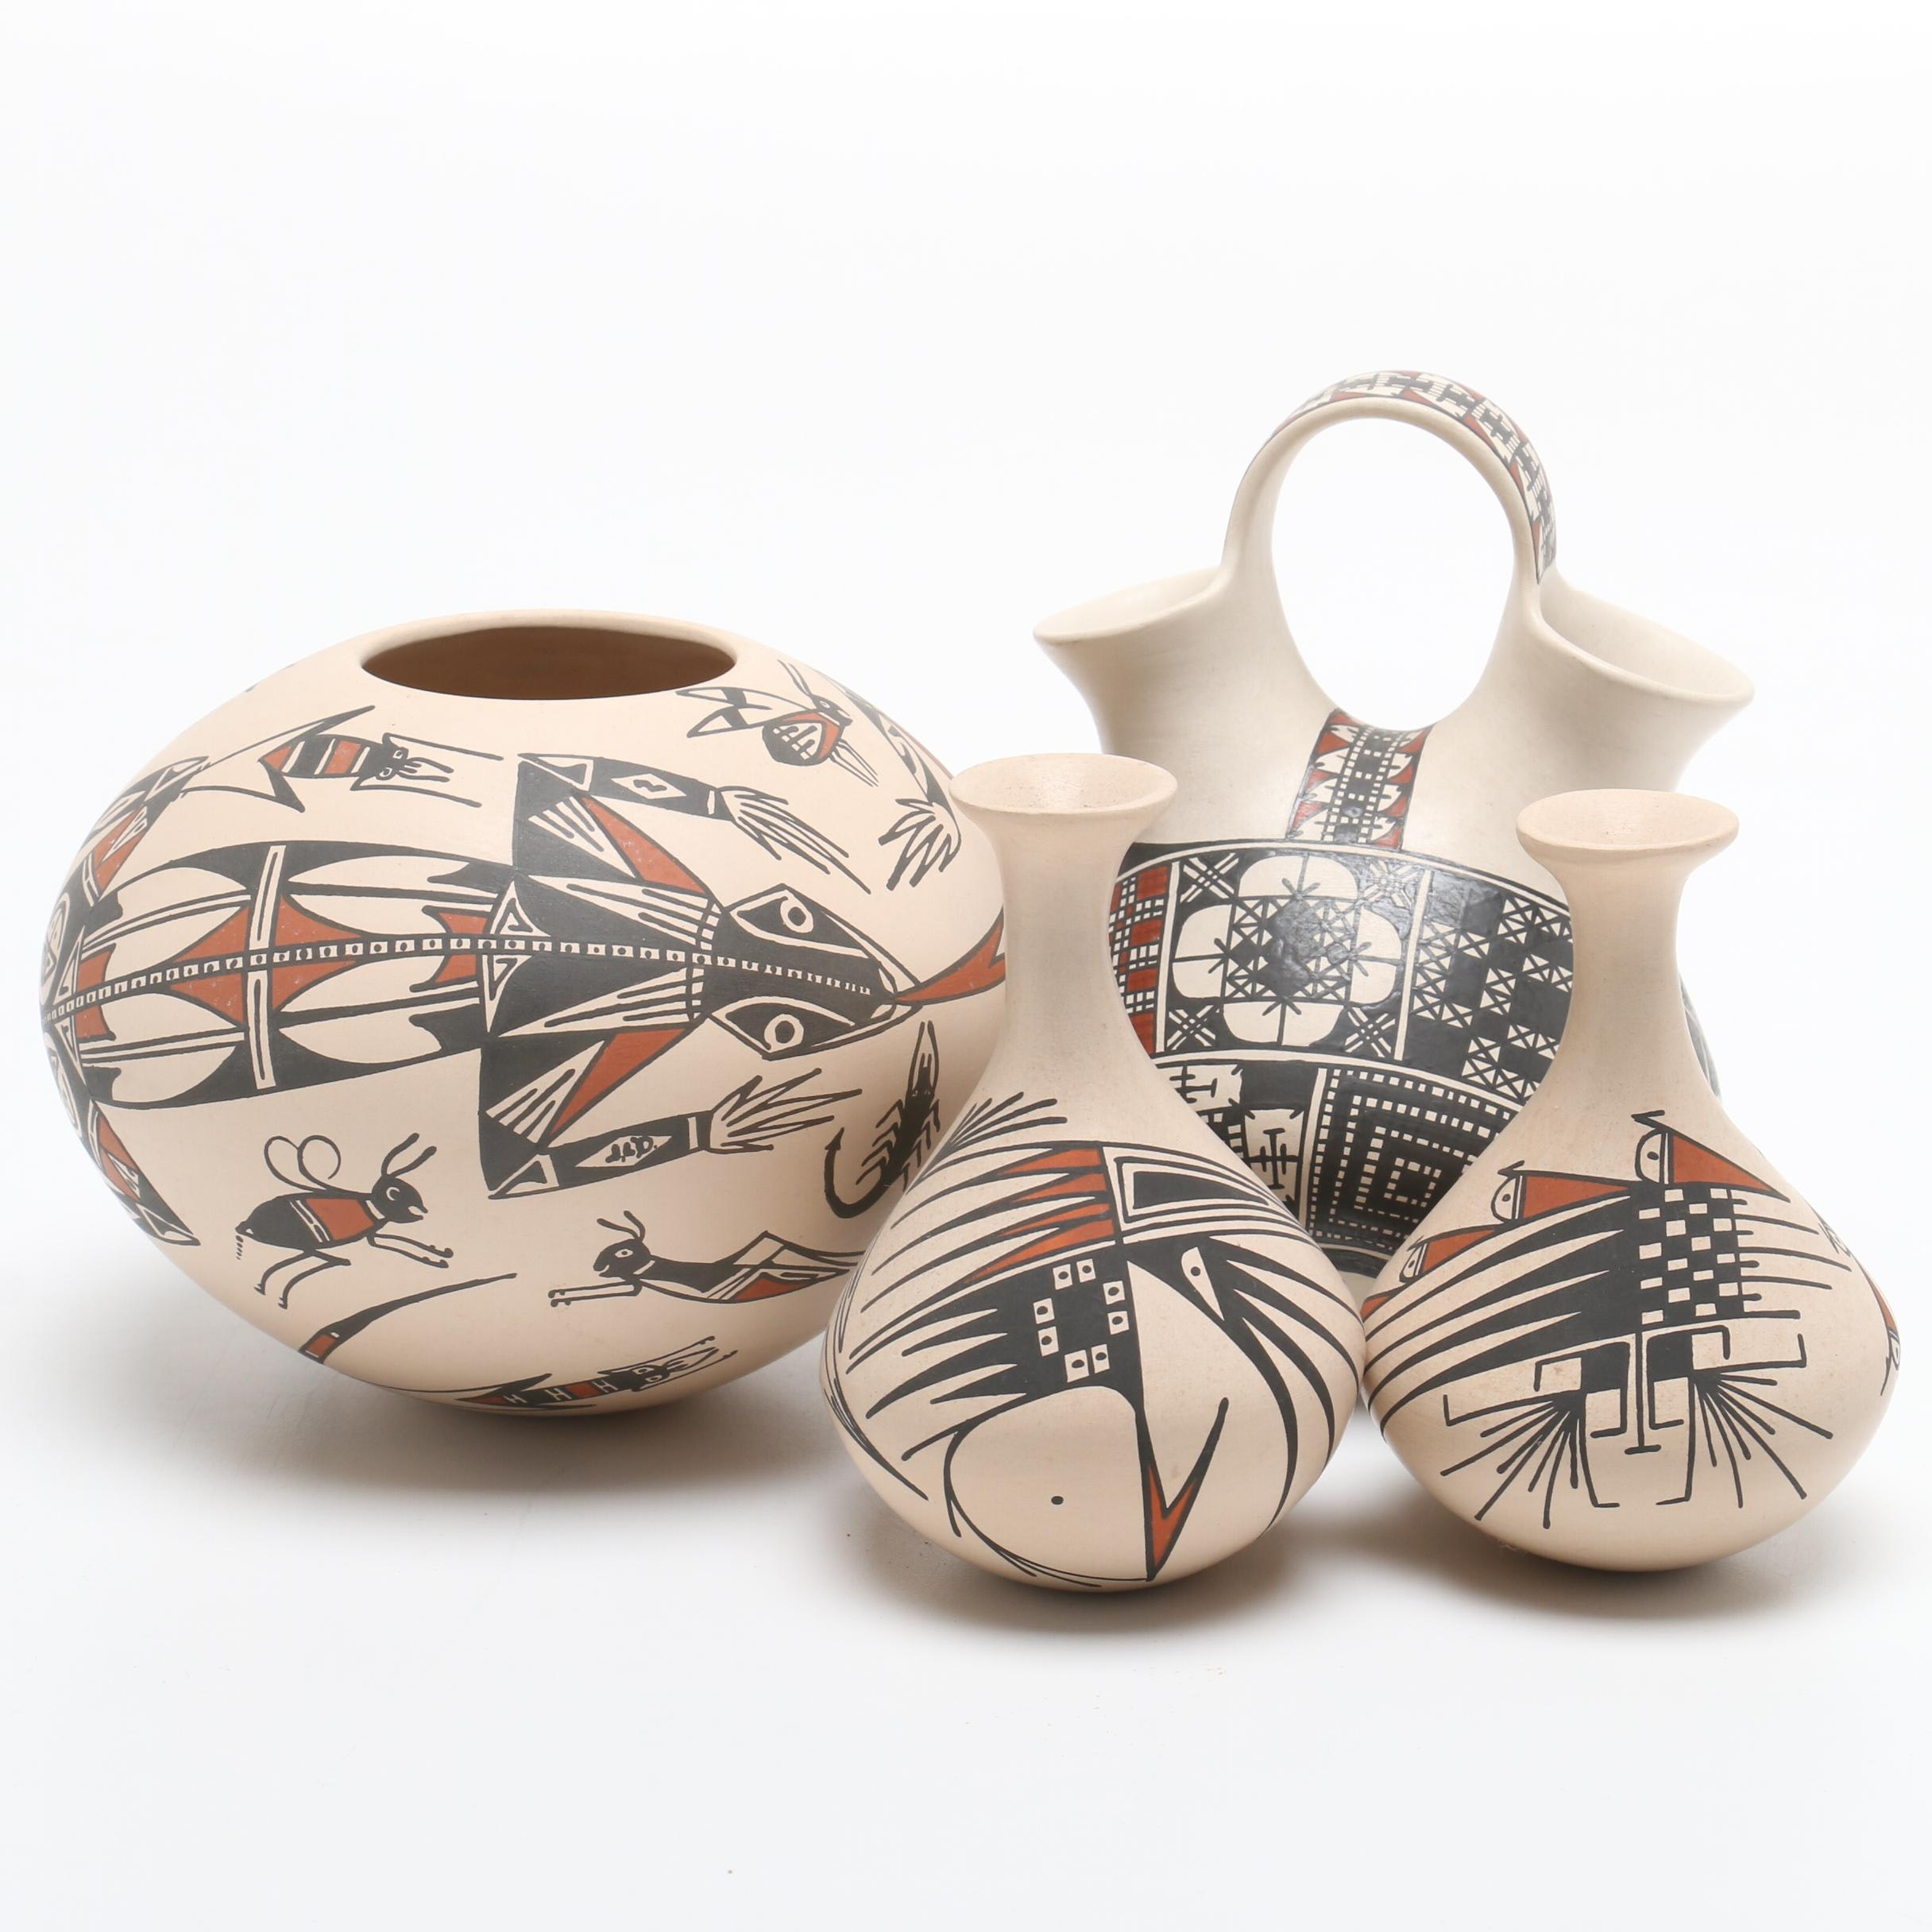 Mata Ortiz Polychrome Pottery with Vases, Seed Pot